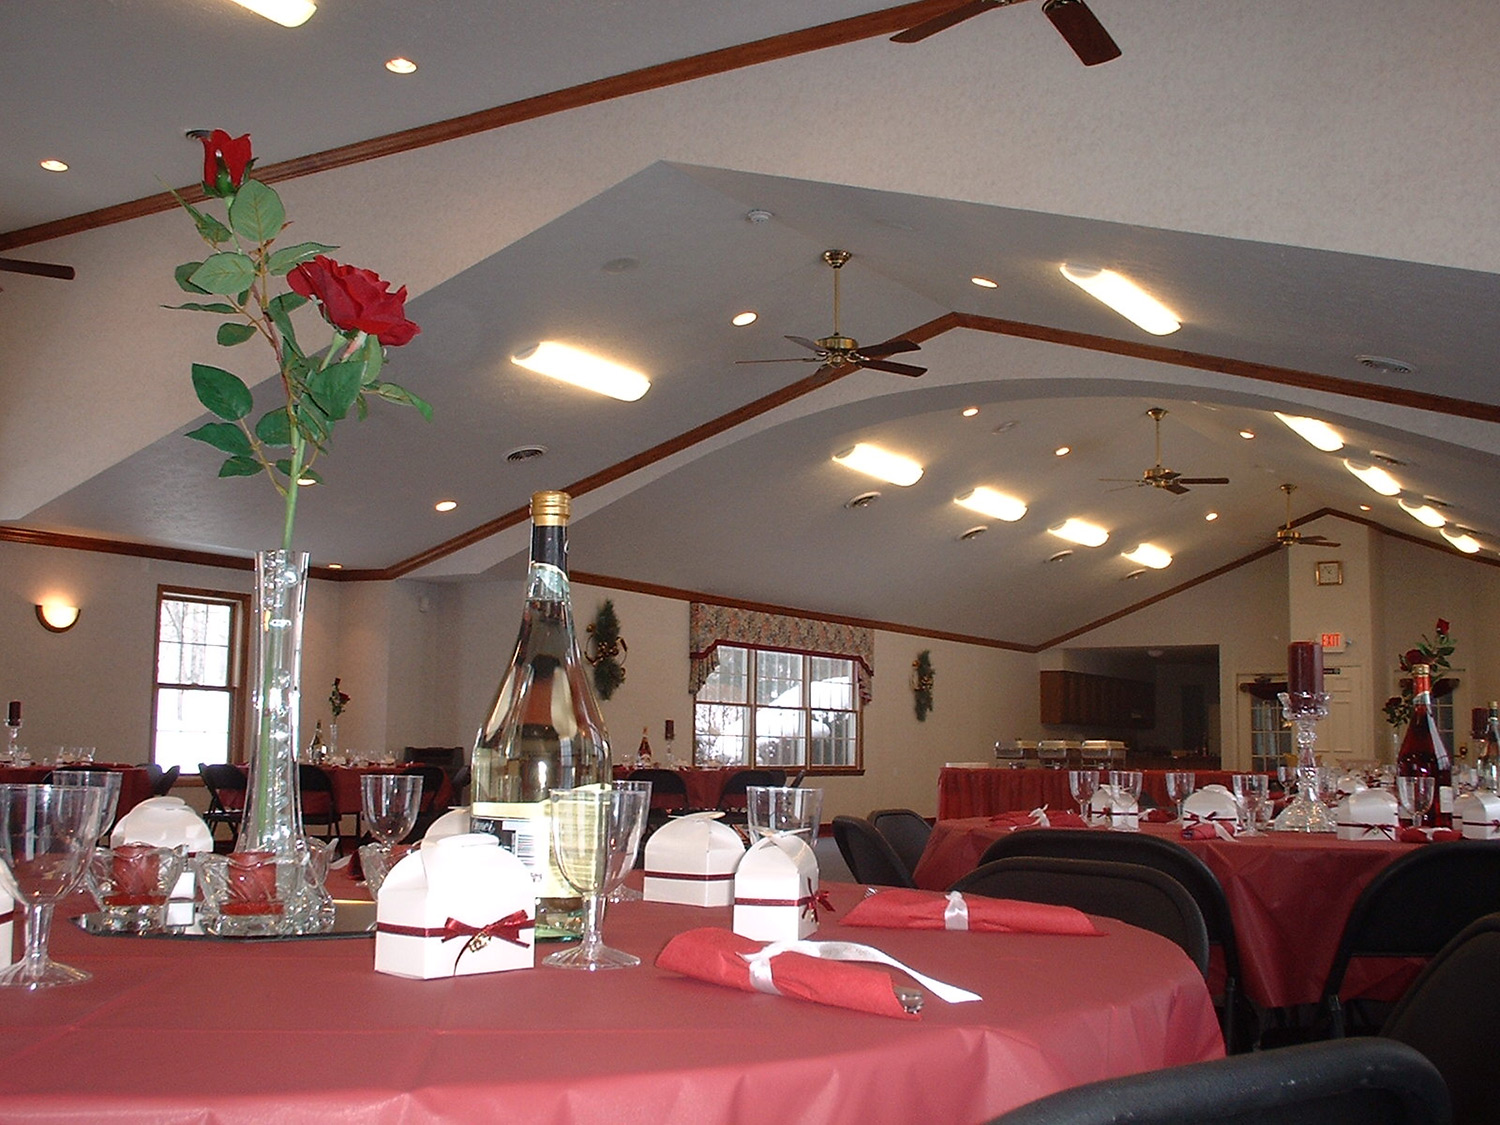 Residents can rent the party room to host birthdays, anniversaries, wedding or baby showers, wedding receptions, holiday celebrations for family or workers from the office, First Communions, business meetings or community group functions.